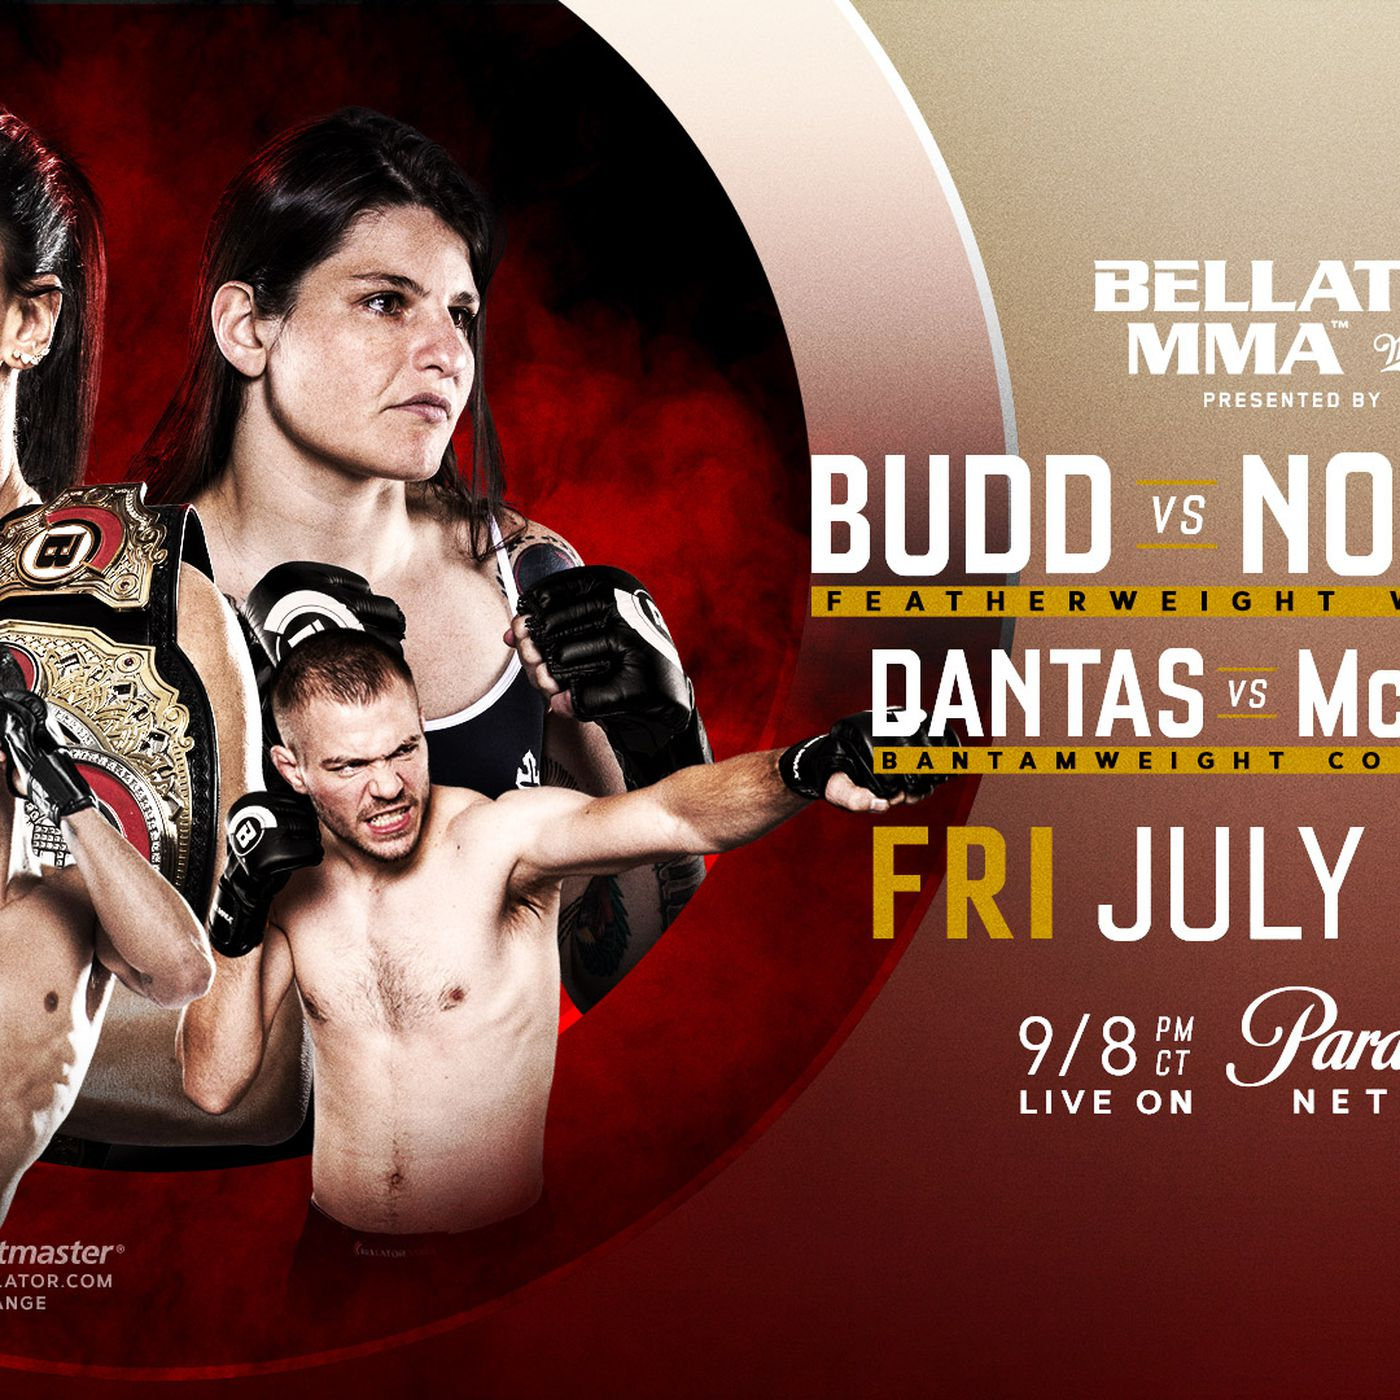 Bellator 202 'Budd vs Nogueira' recap with results,  gifs and